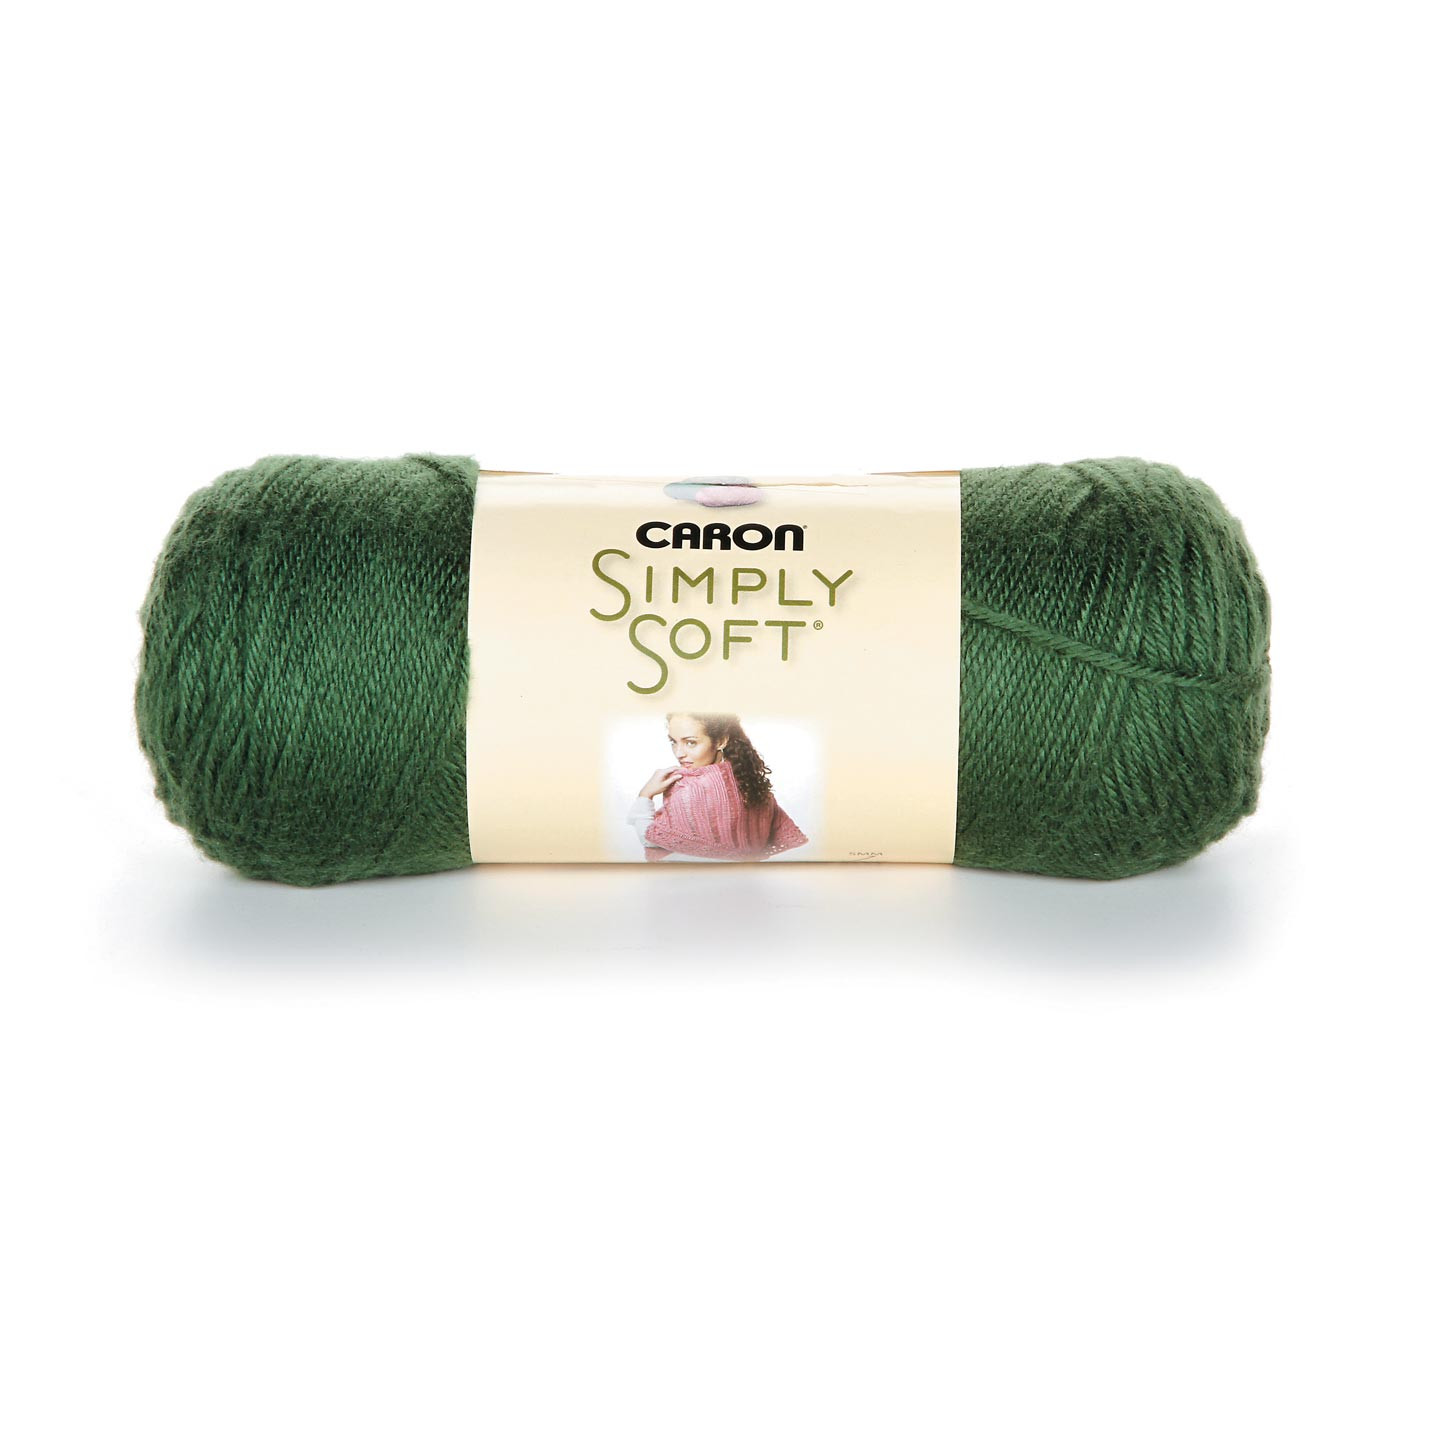 New Caron Simply soft Yarn Dark Sage Caron Simply soft Colors Of Innovative 41 Images Caron Simply soft Colors